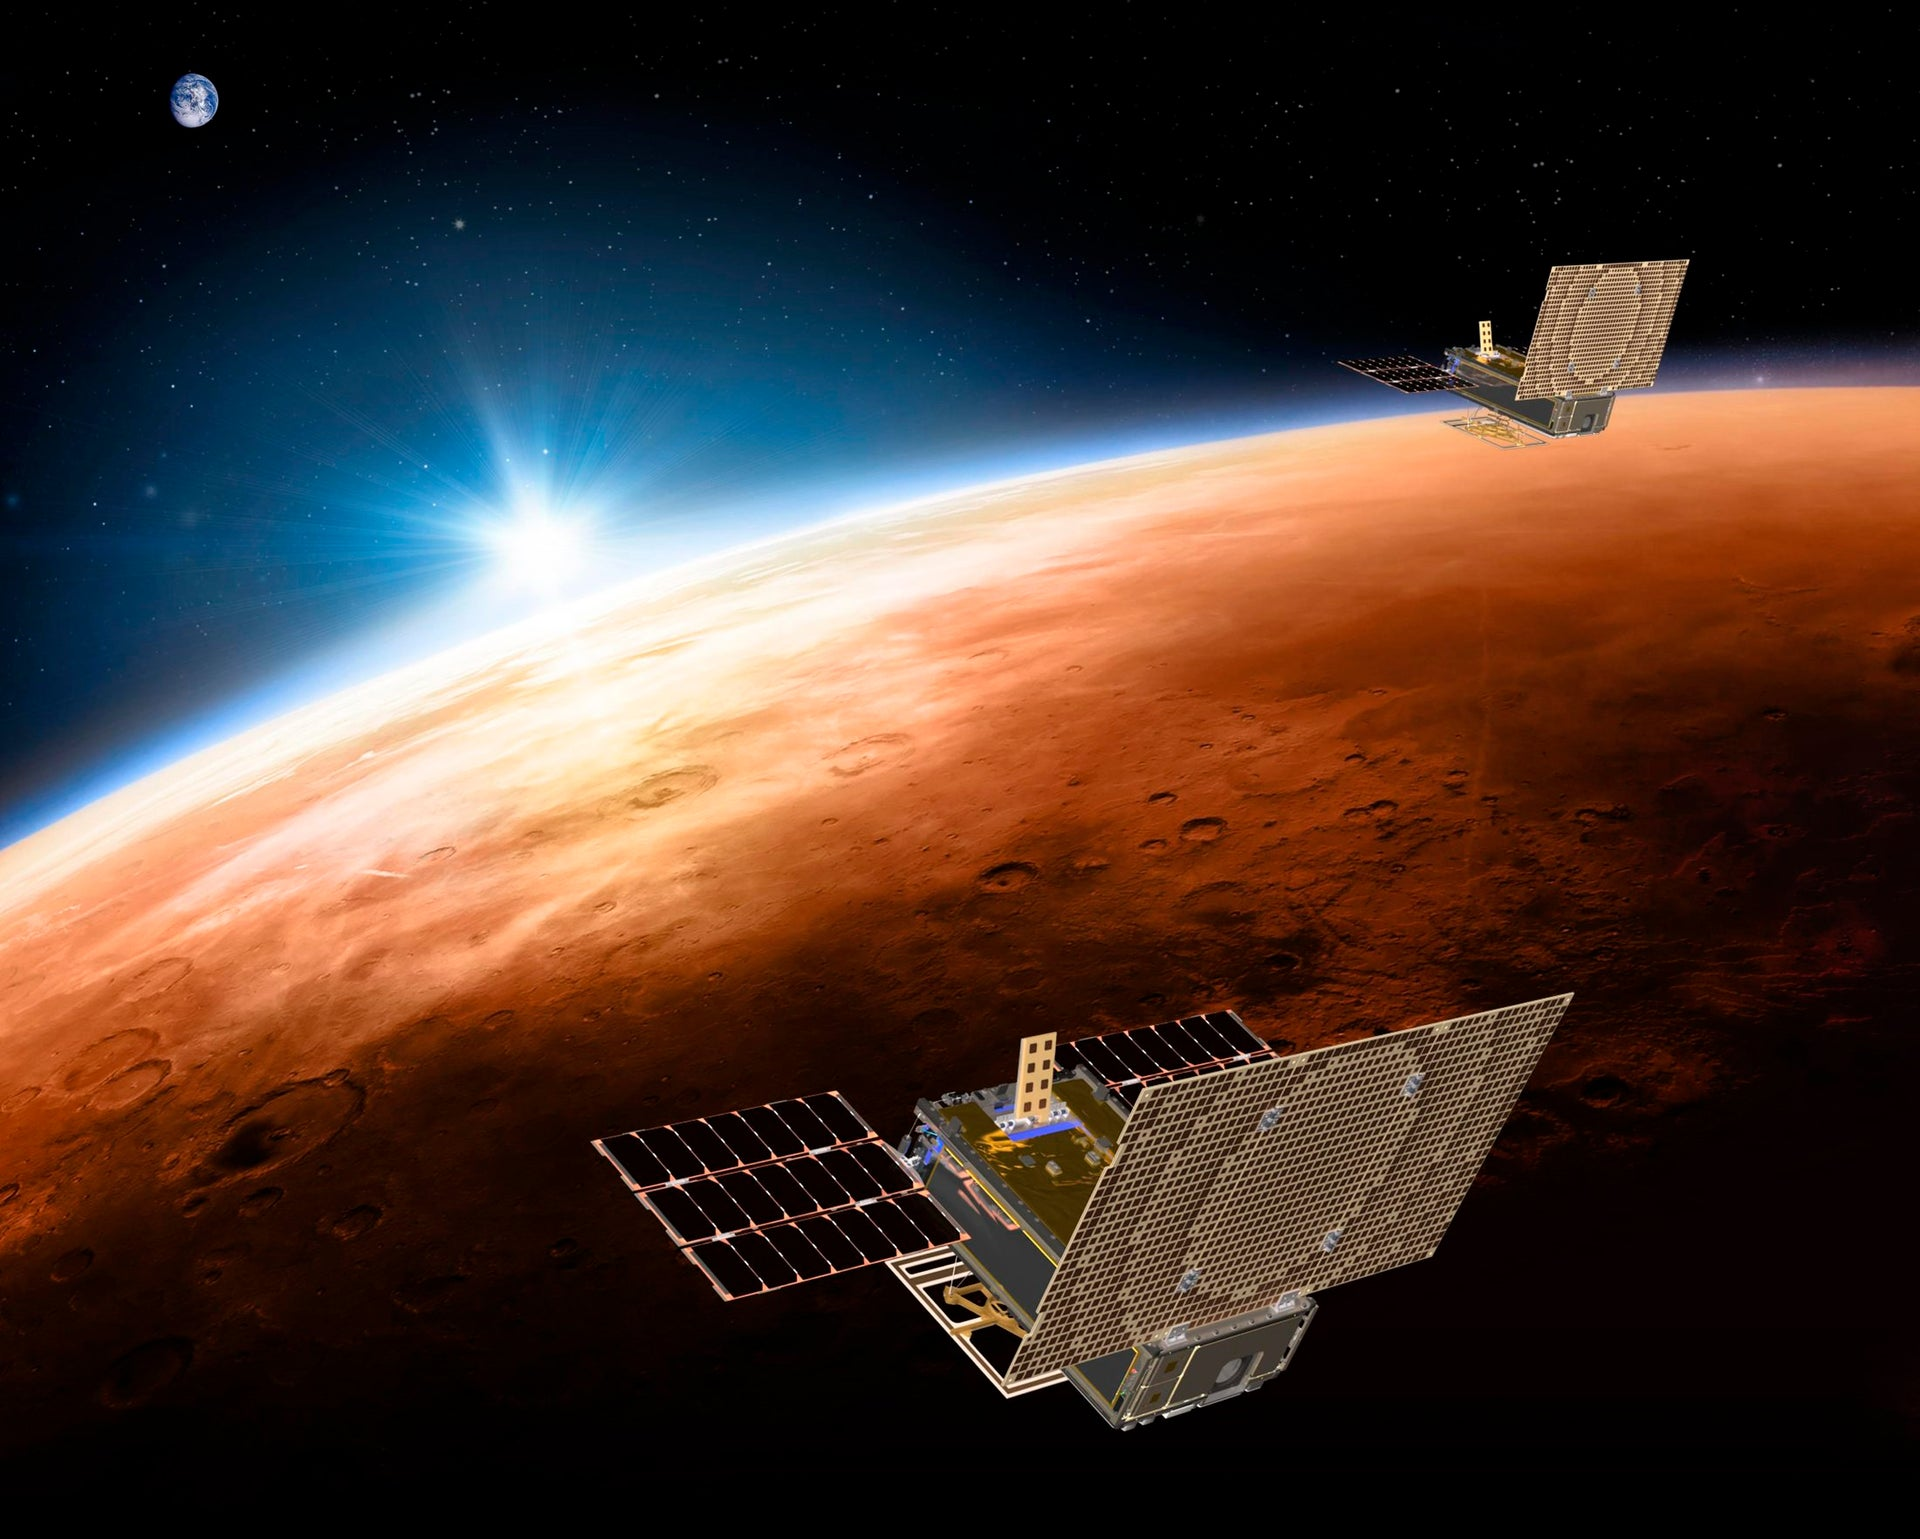 illustration made available by NASA on March 29, 2018 shows the twin Mars Cube One (MarCO) spacecraft flying over Mars with Earth and the sun in the distance.